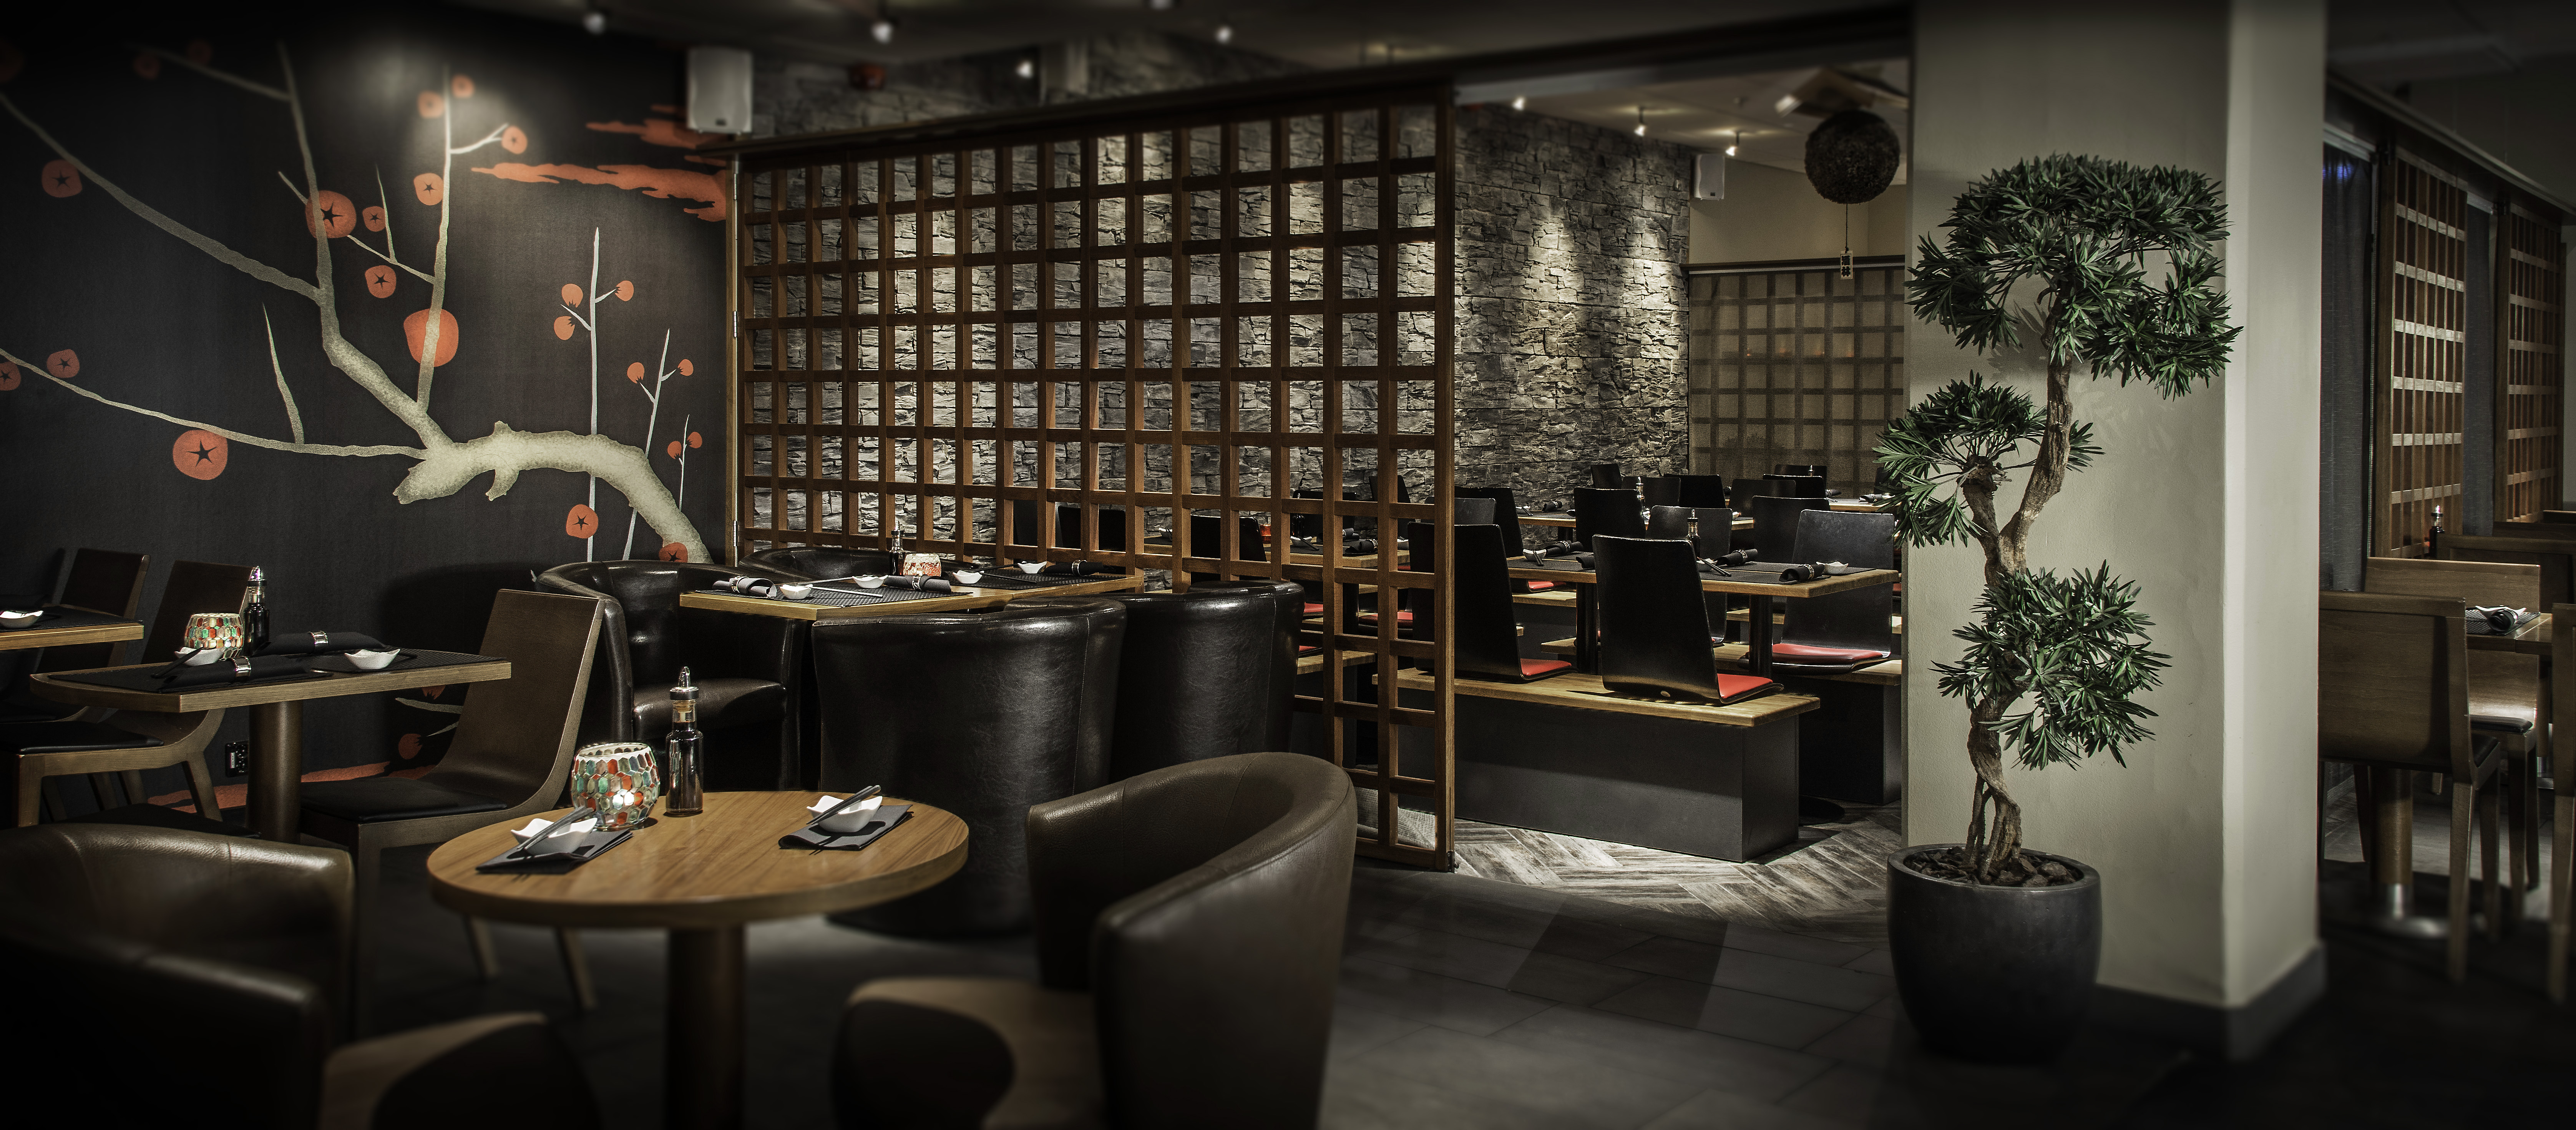 East West - Sushi, Grill, Lounge - Örebro